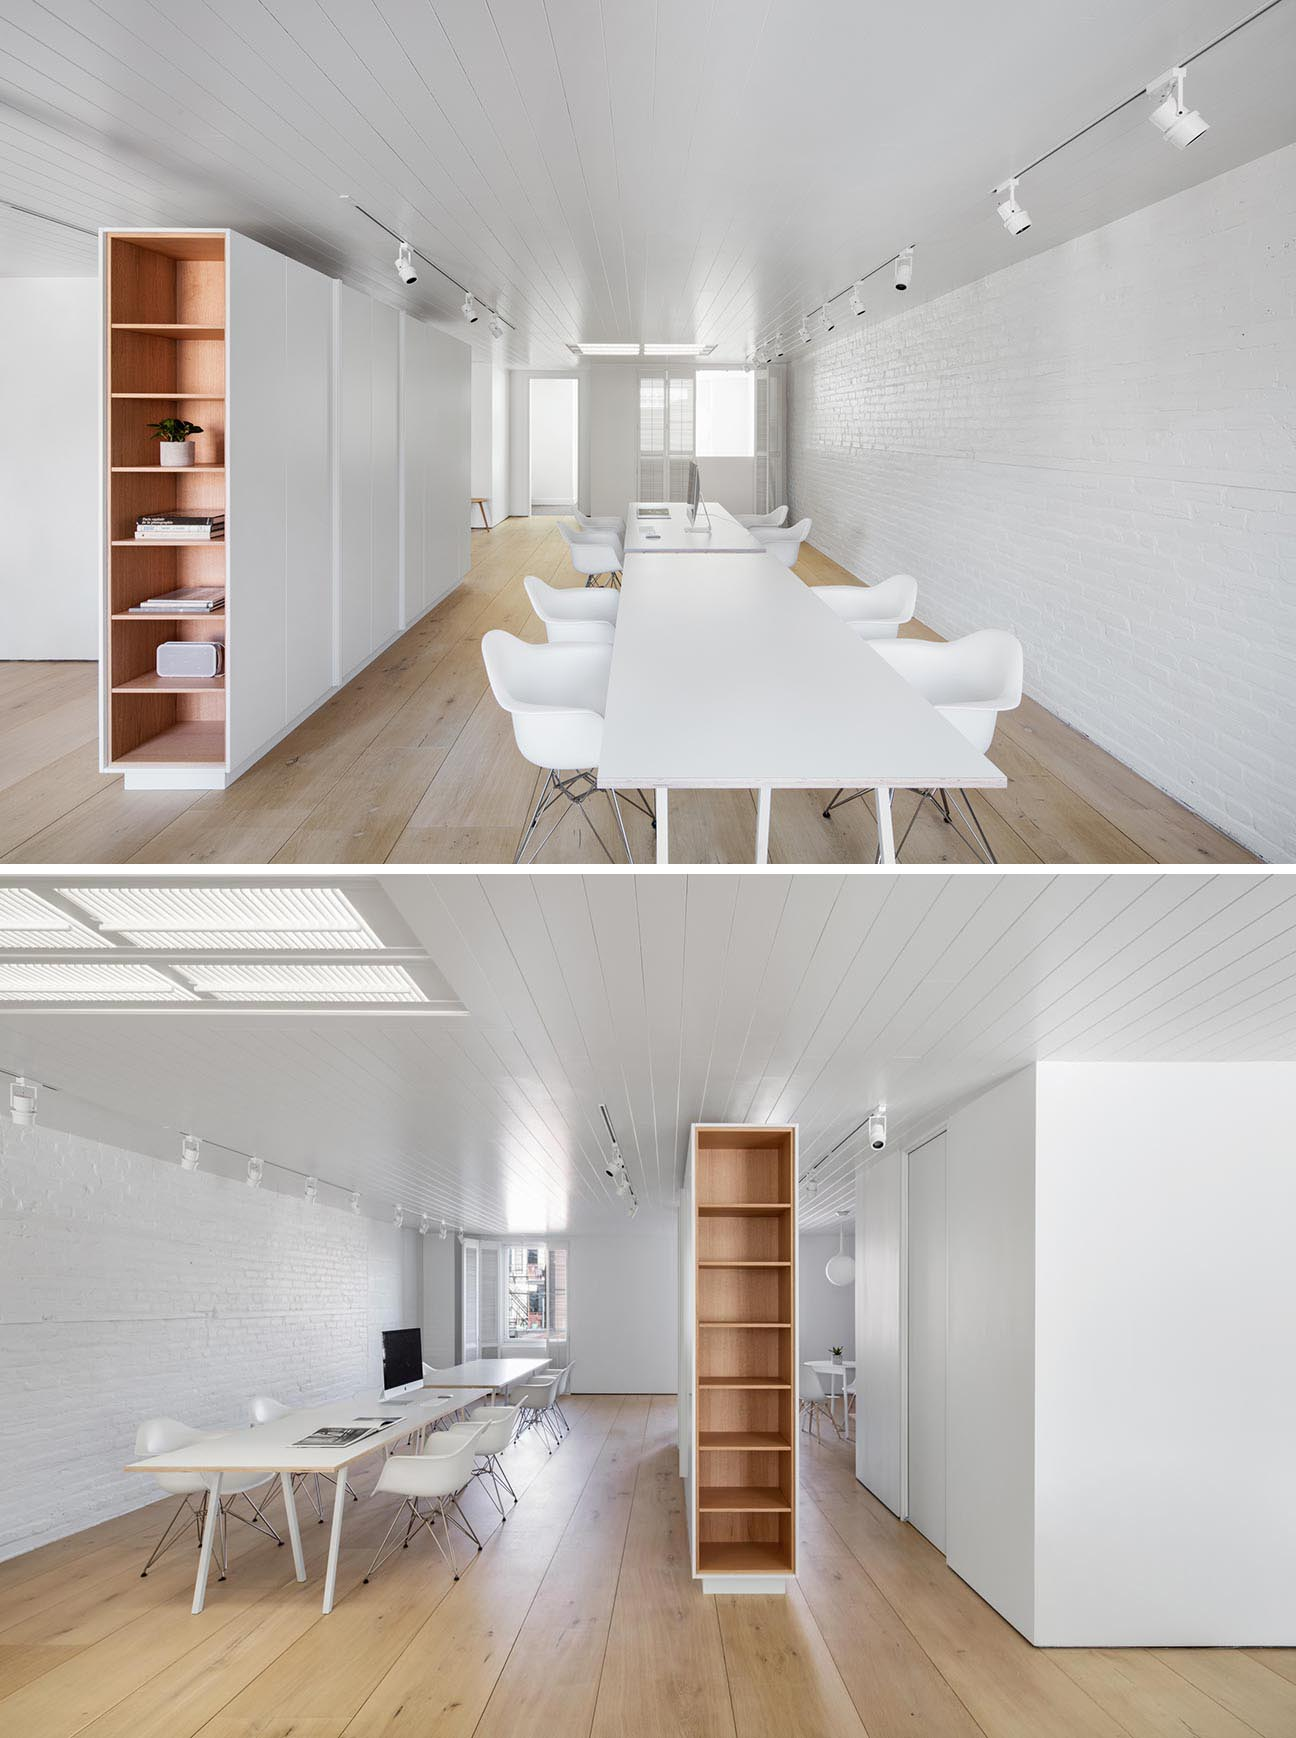 A modern office with wood lined shelves and wood floors.